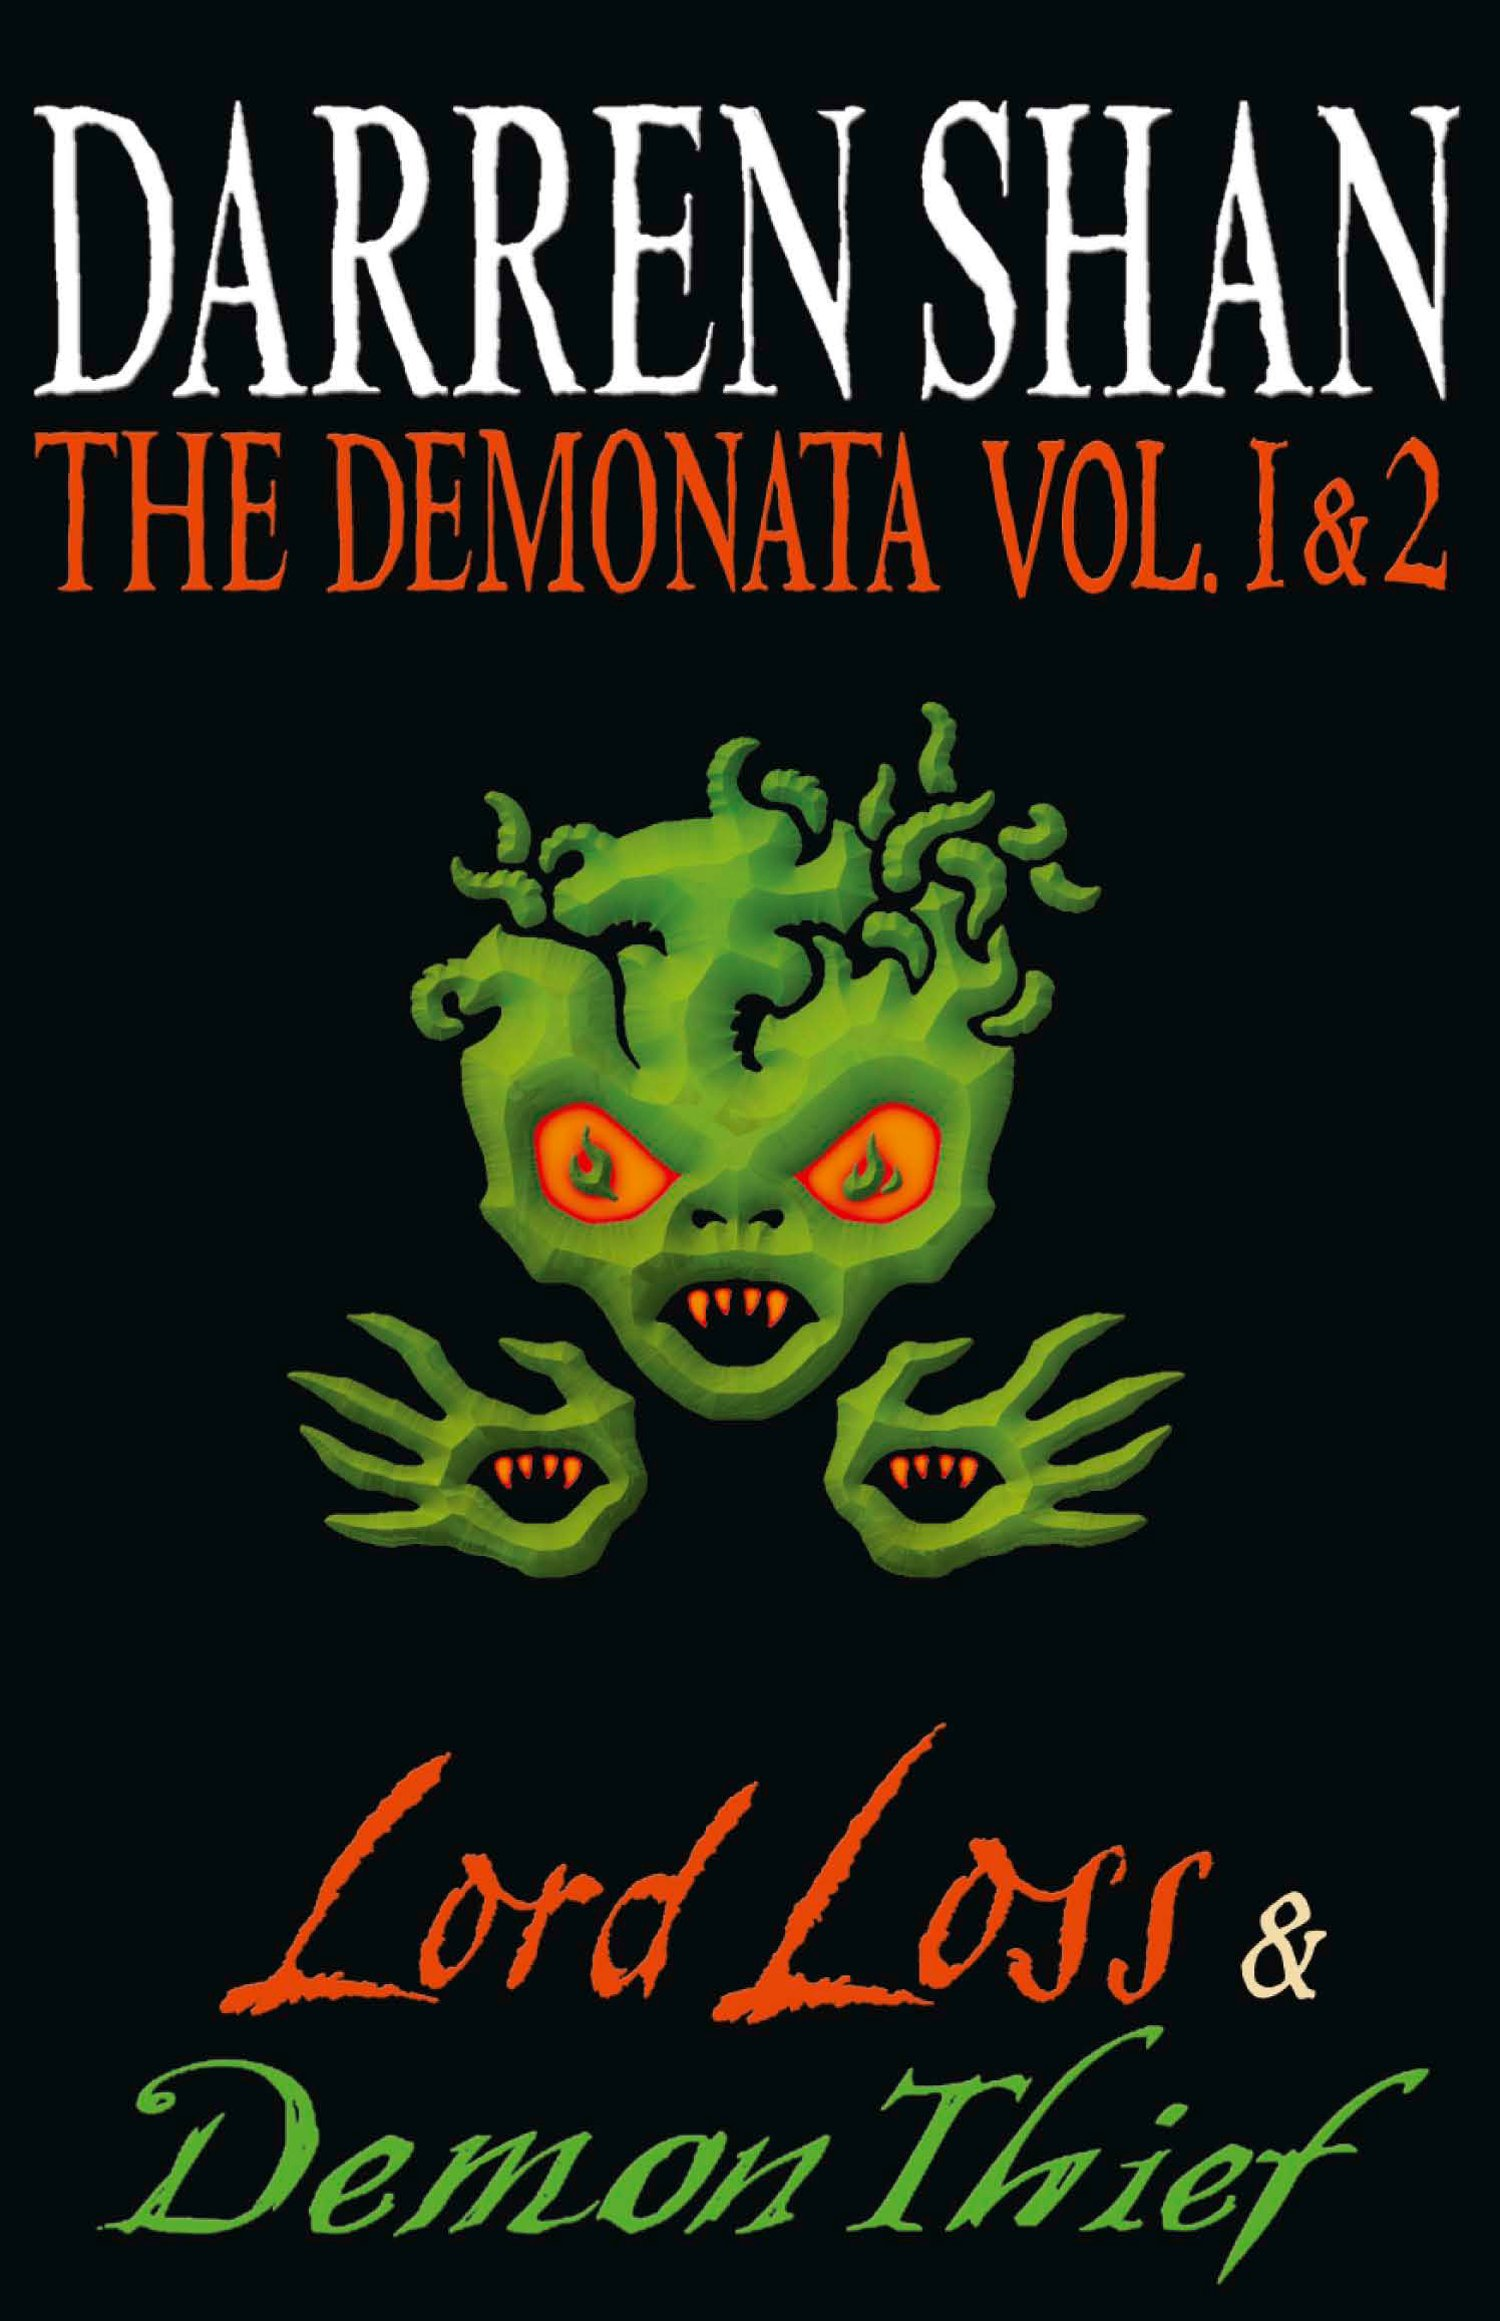 Volumes 1 and 2 - Lord Loss/Demon Thief (The Demonata)